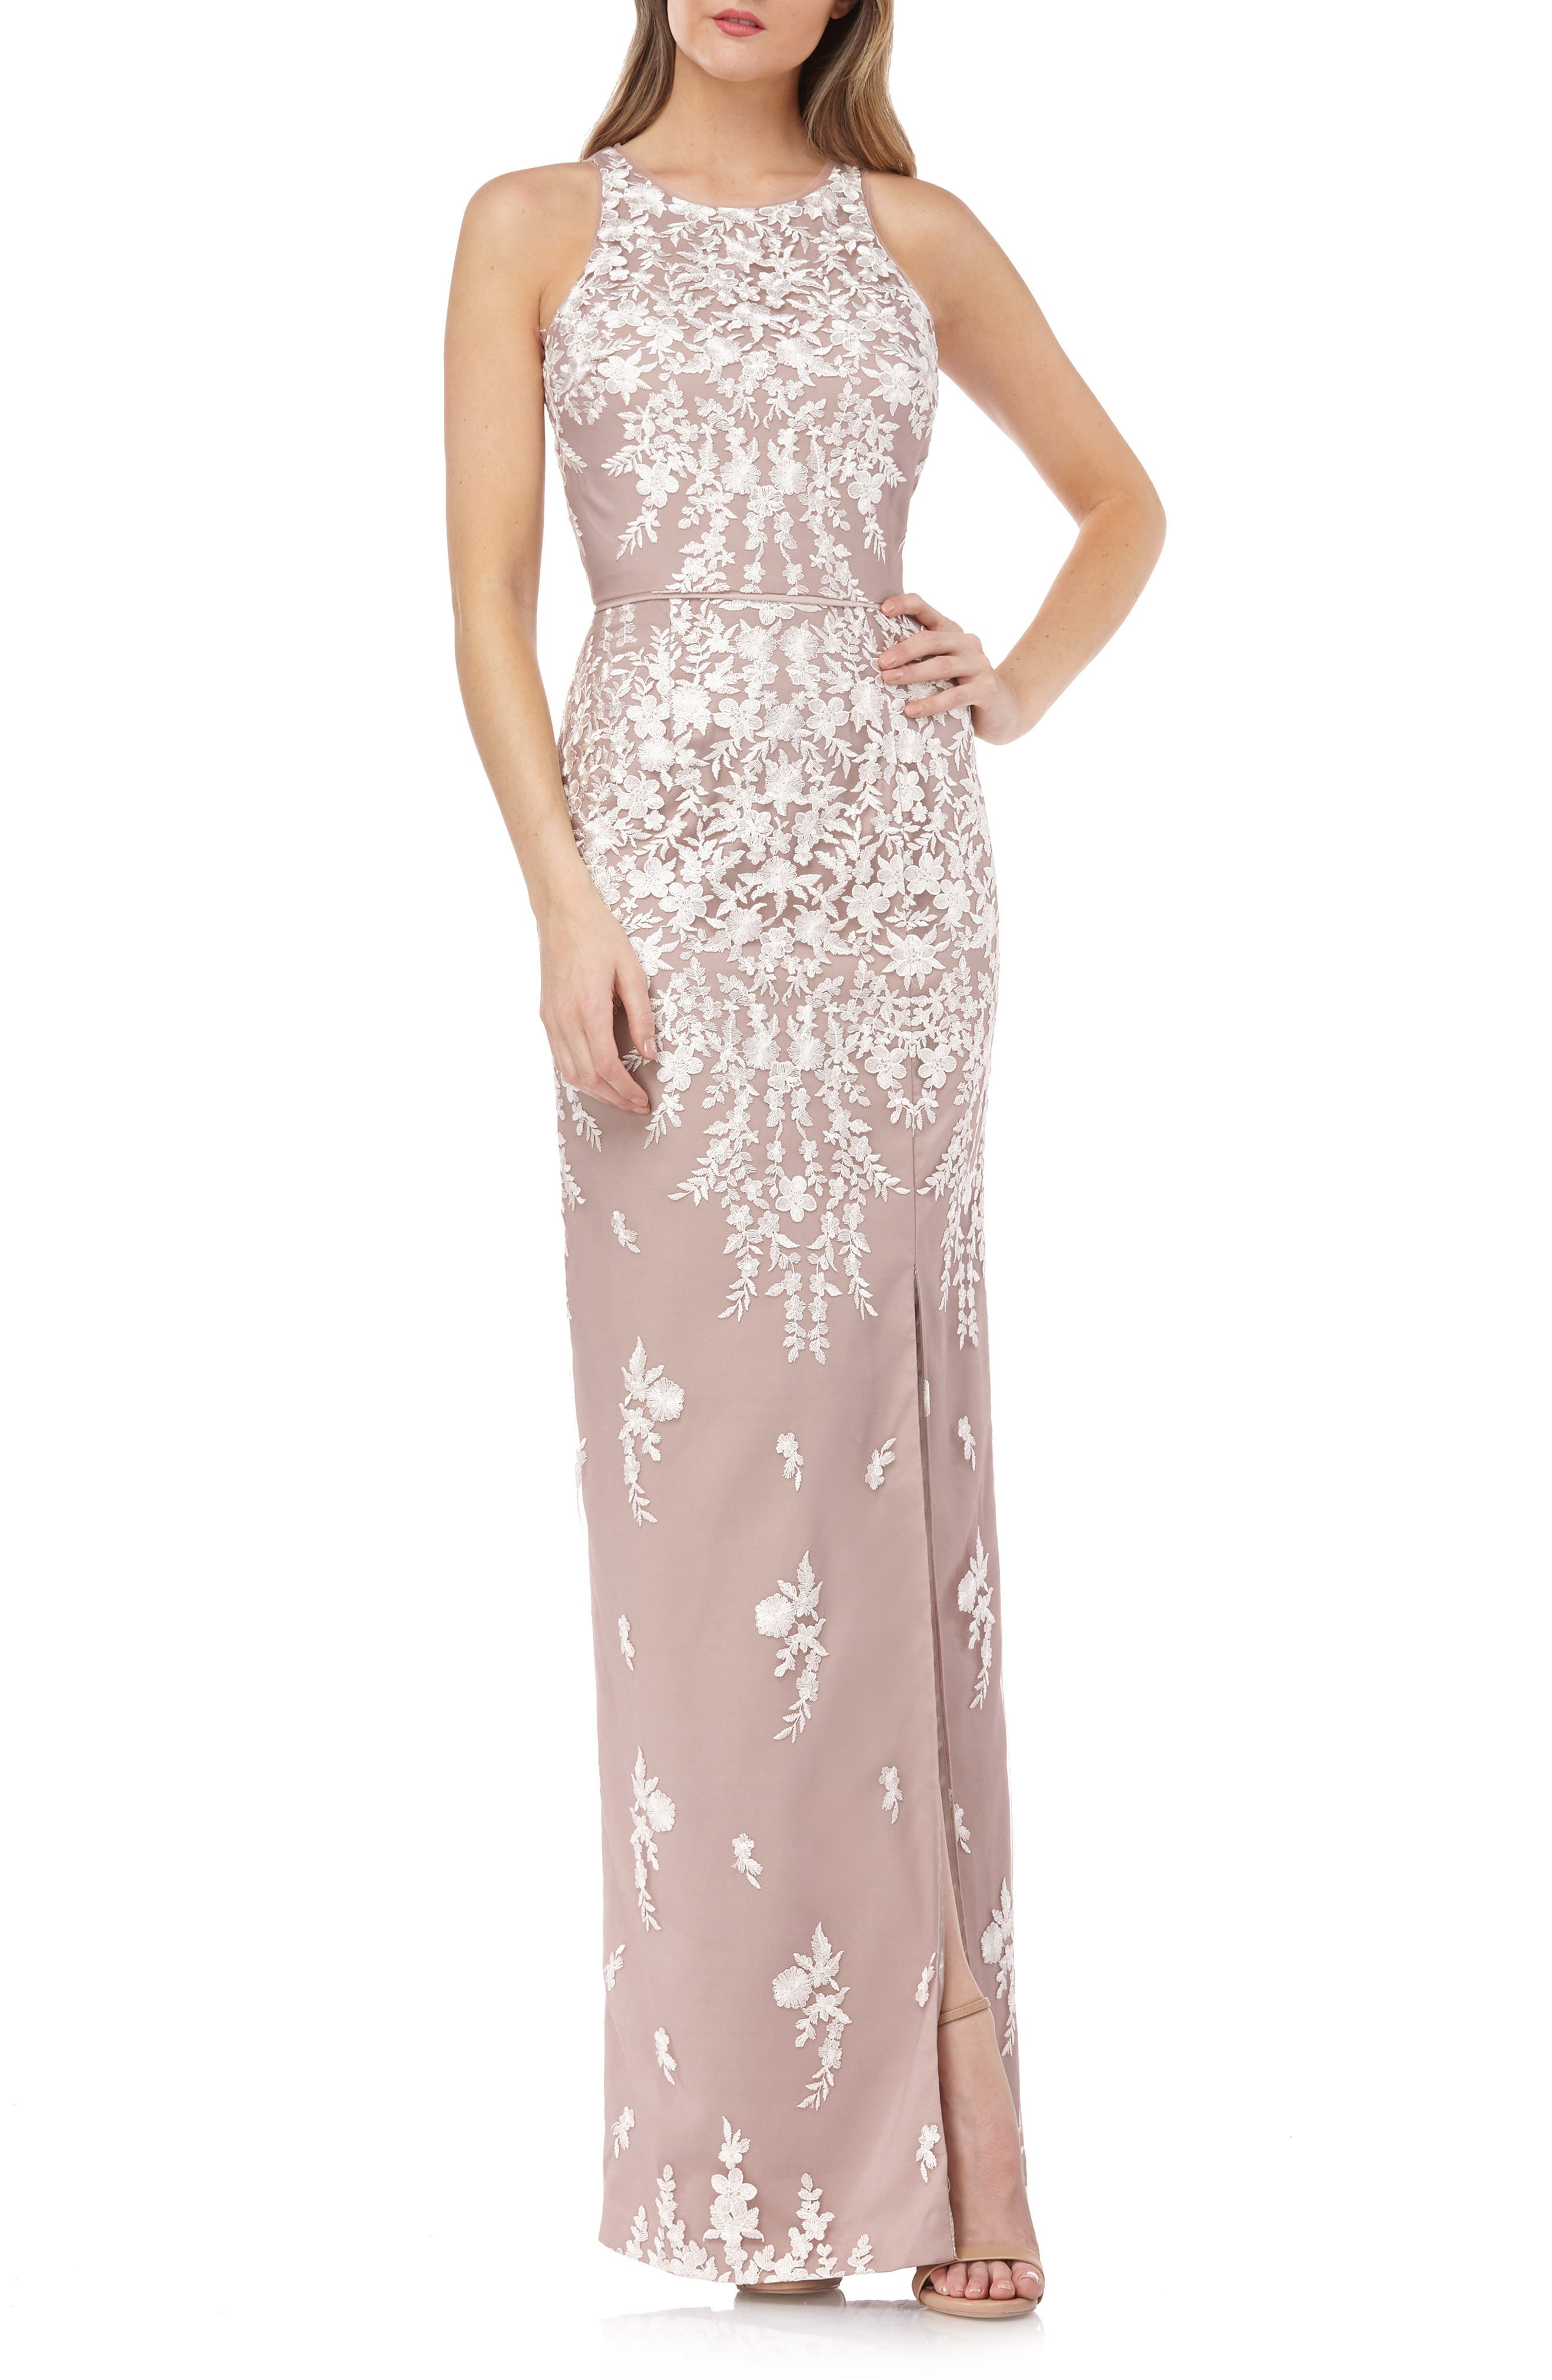 JS Collections Floral Embroidered Mesh Evening Dress | Nordstrom